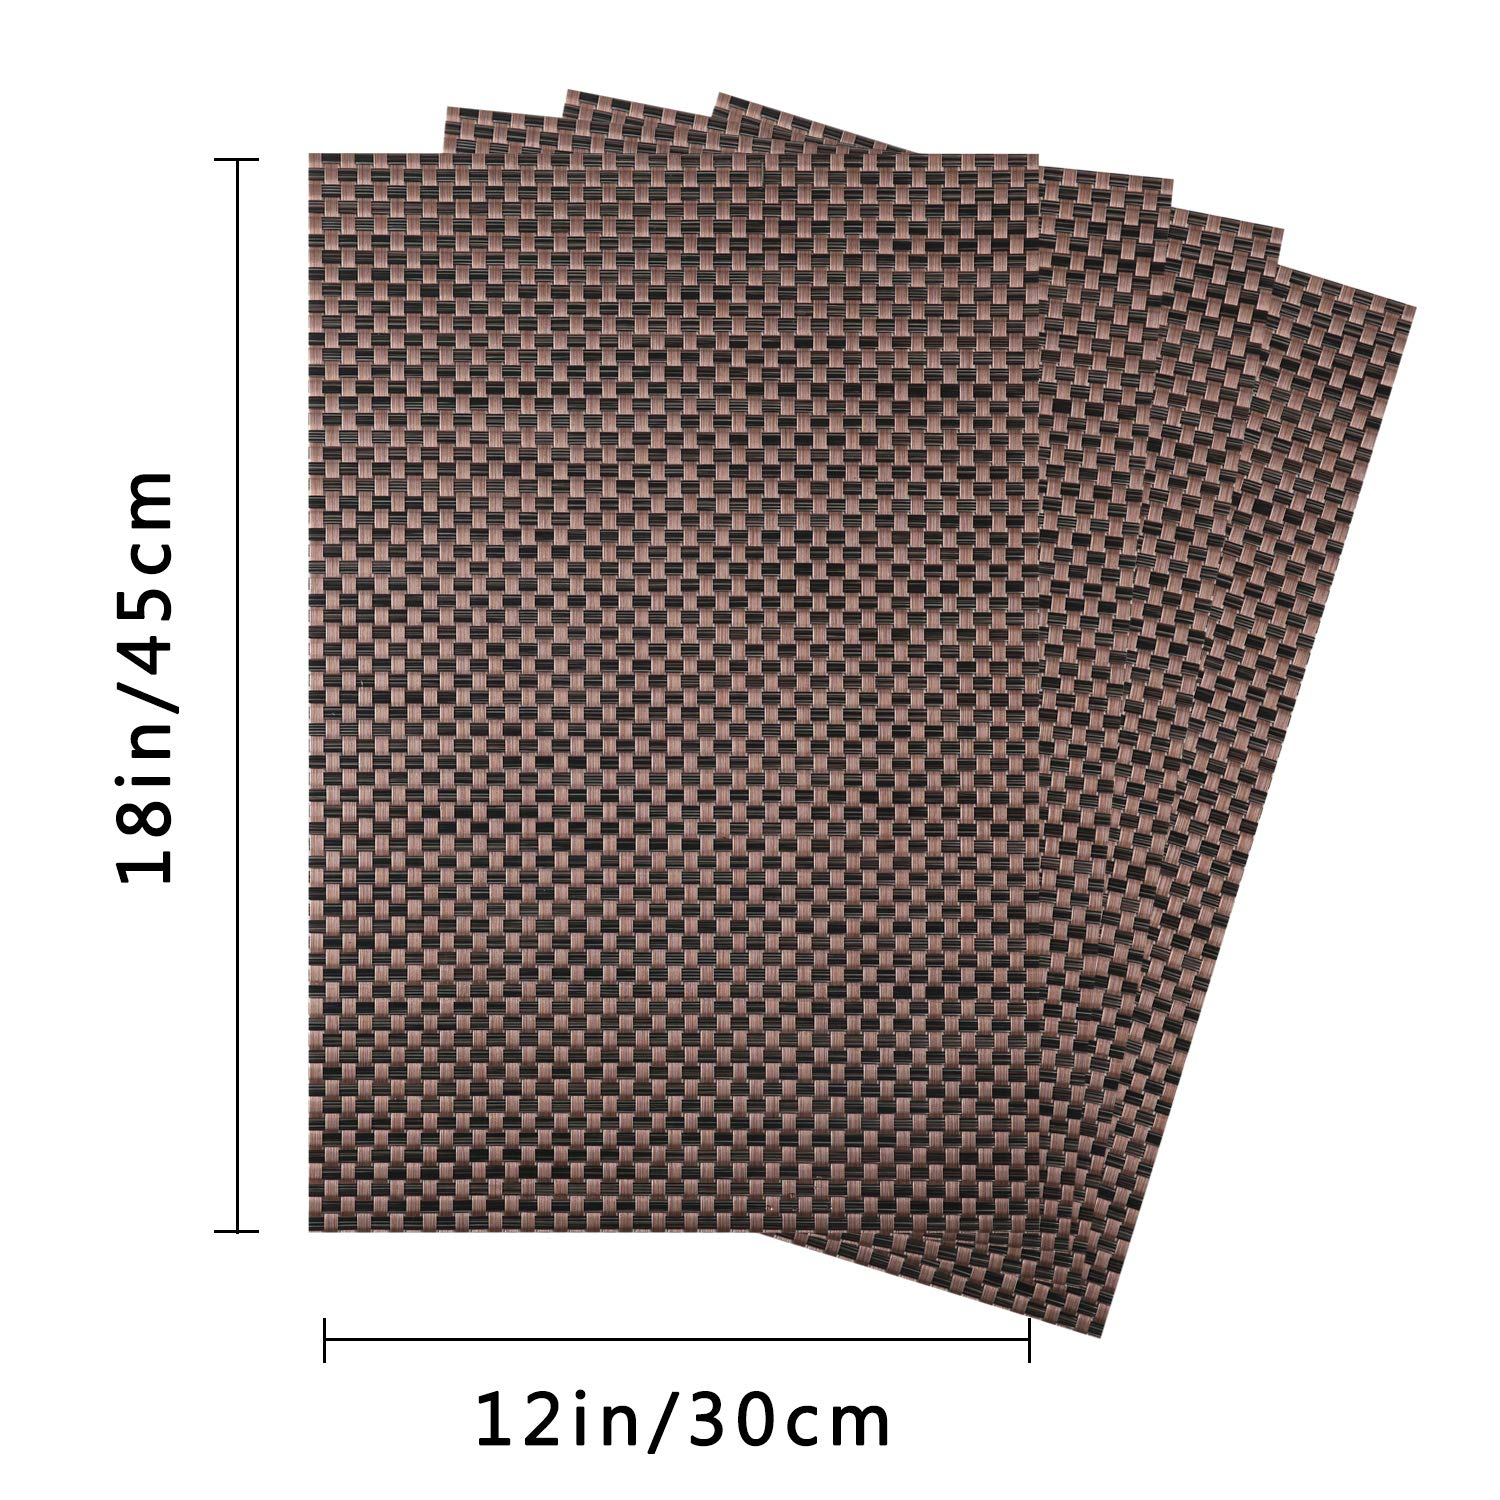 Top Finel Table Mats Sets Crossweave PVC Washable Stain Resistant Durable Dining Table Outdoor,Brown,Set of 8 by Top Finel (Image #4)